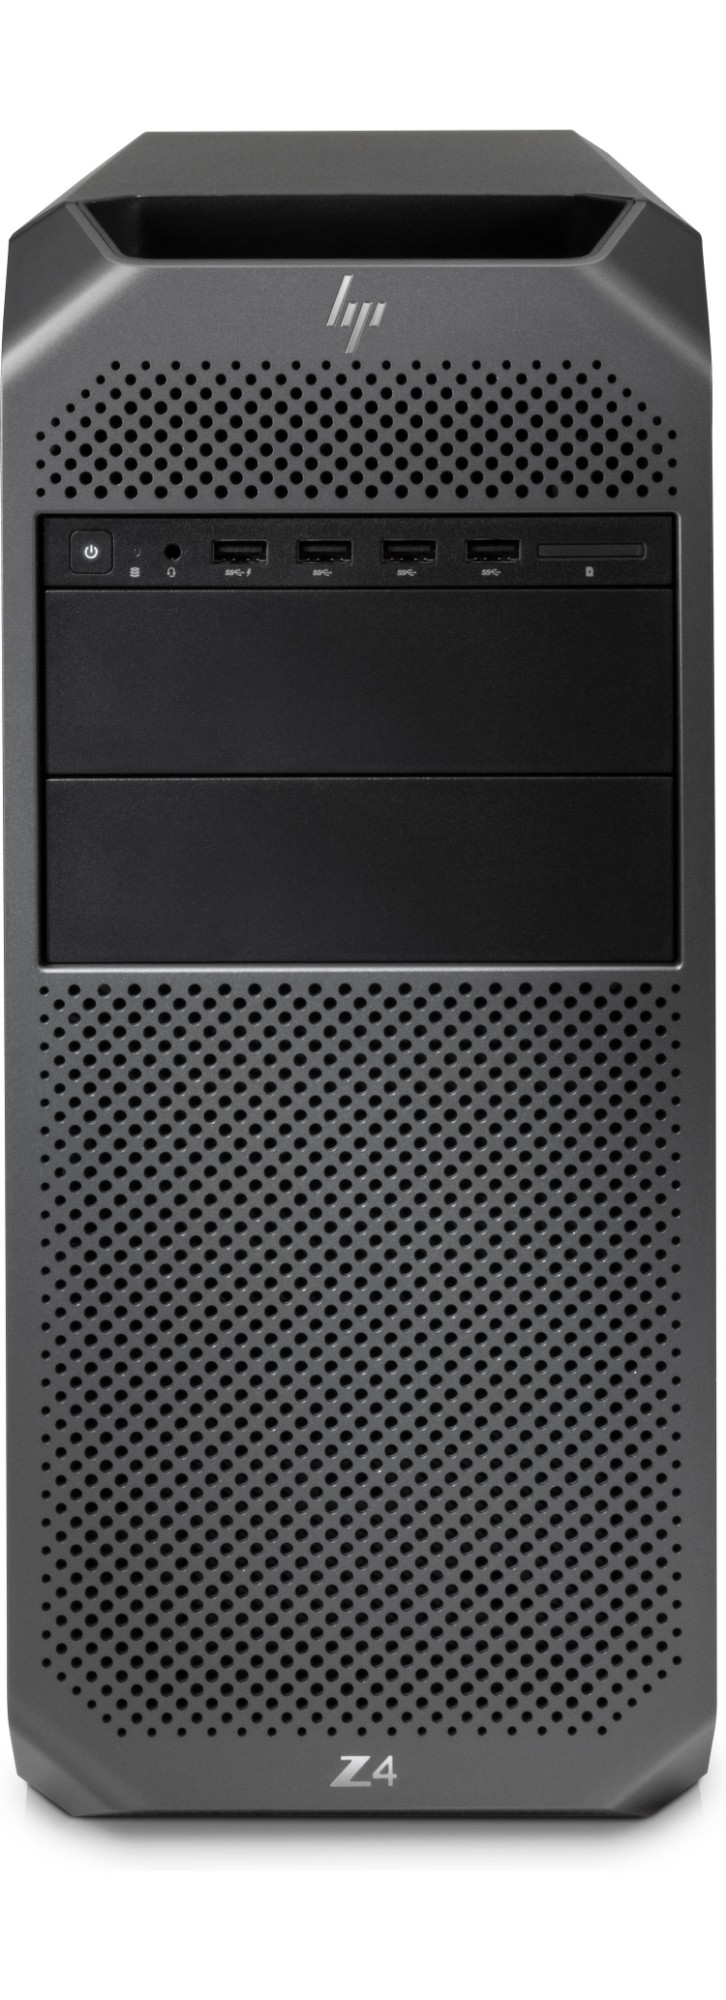 Workstation Z4 G4 Tower - W2102 - 8GB RAM - 1TB HDD - Win10 Pro - Qwerty UK